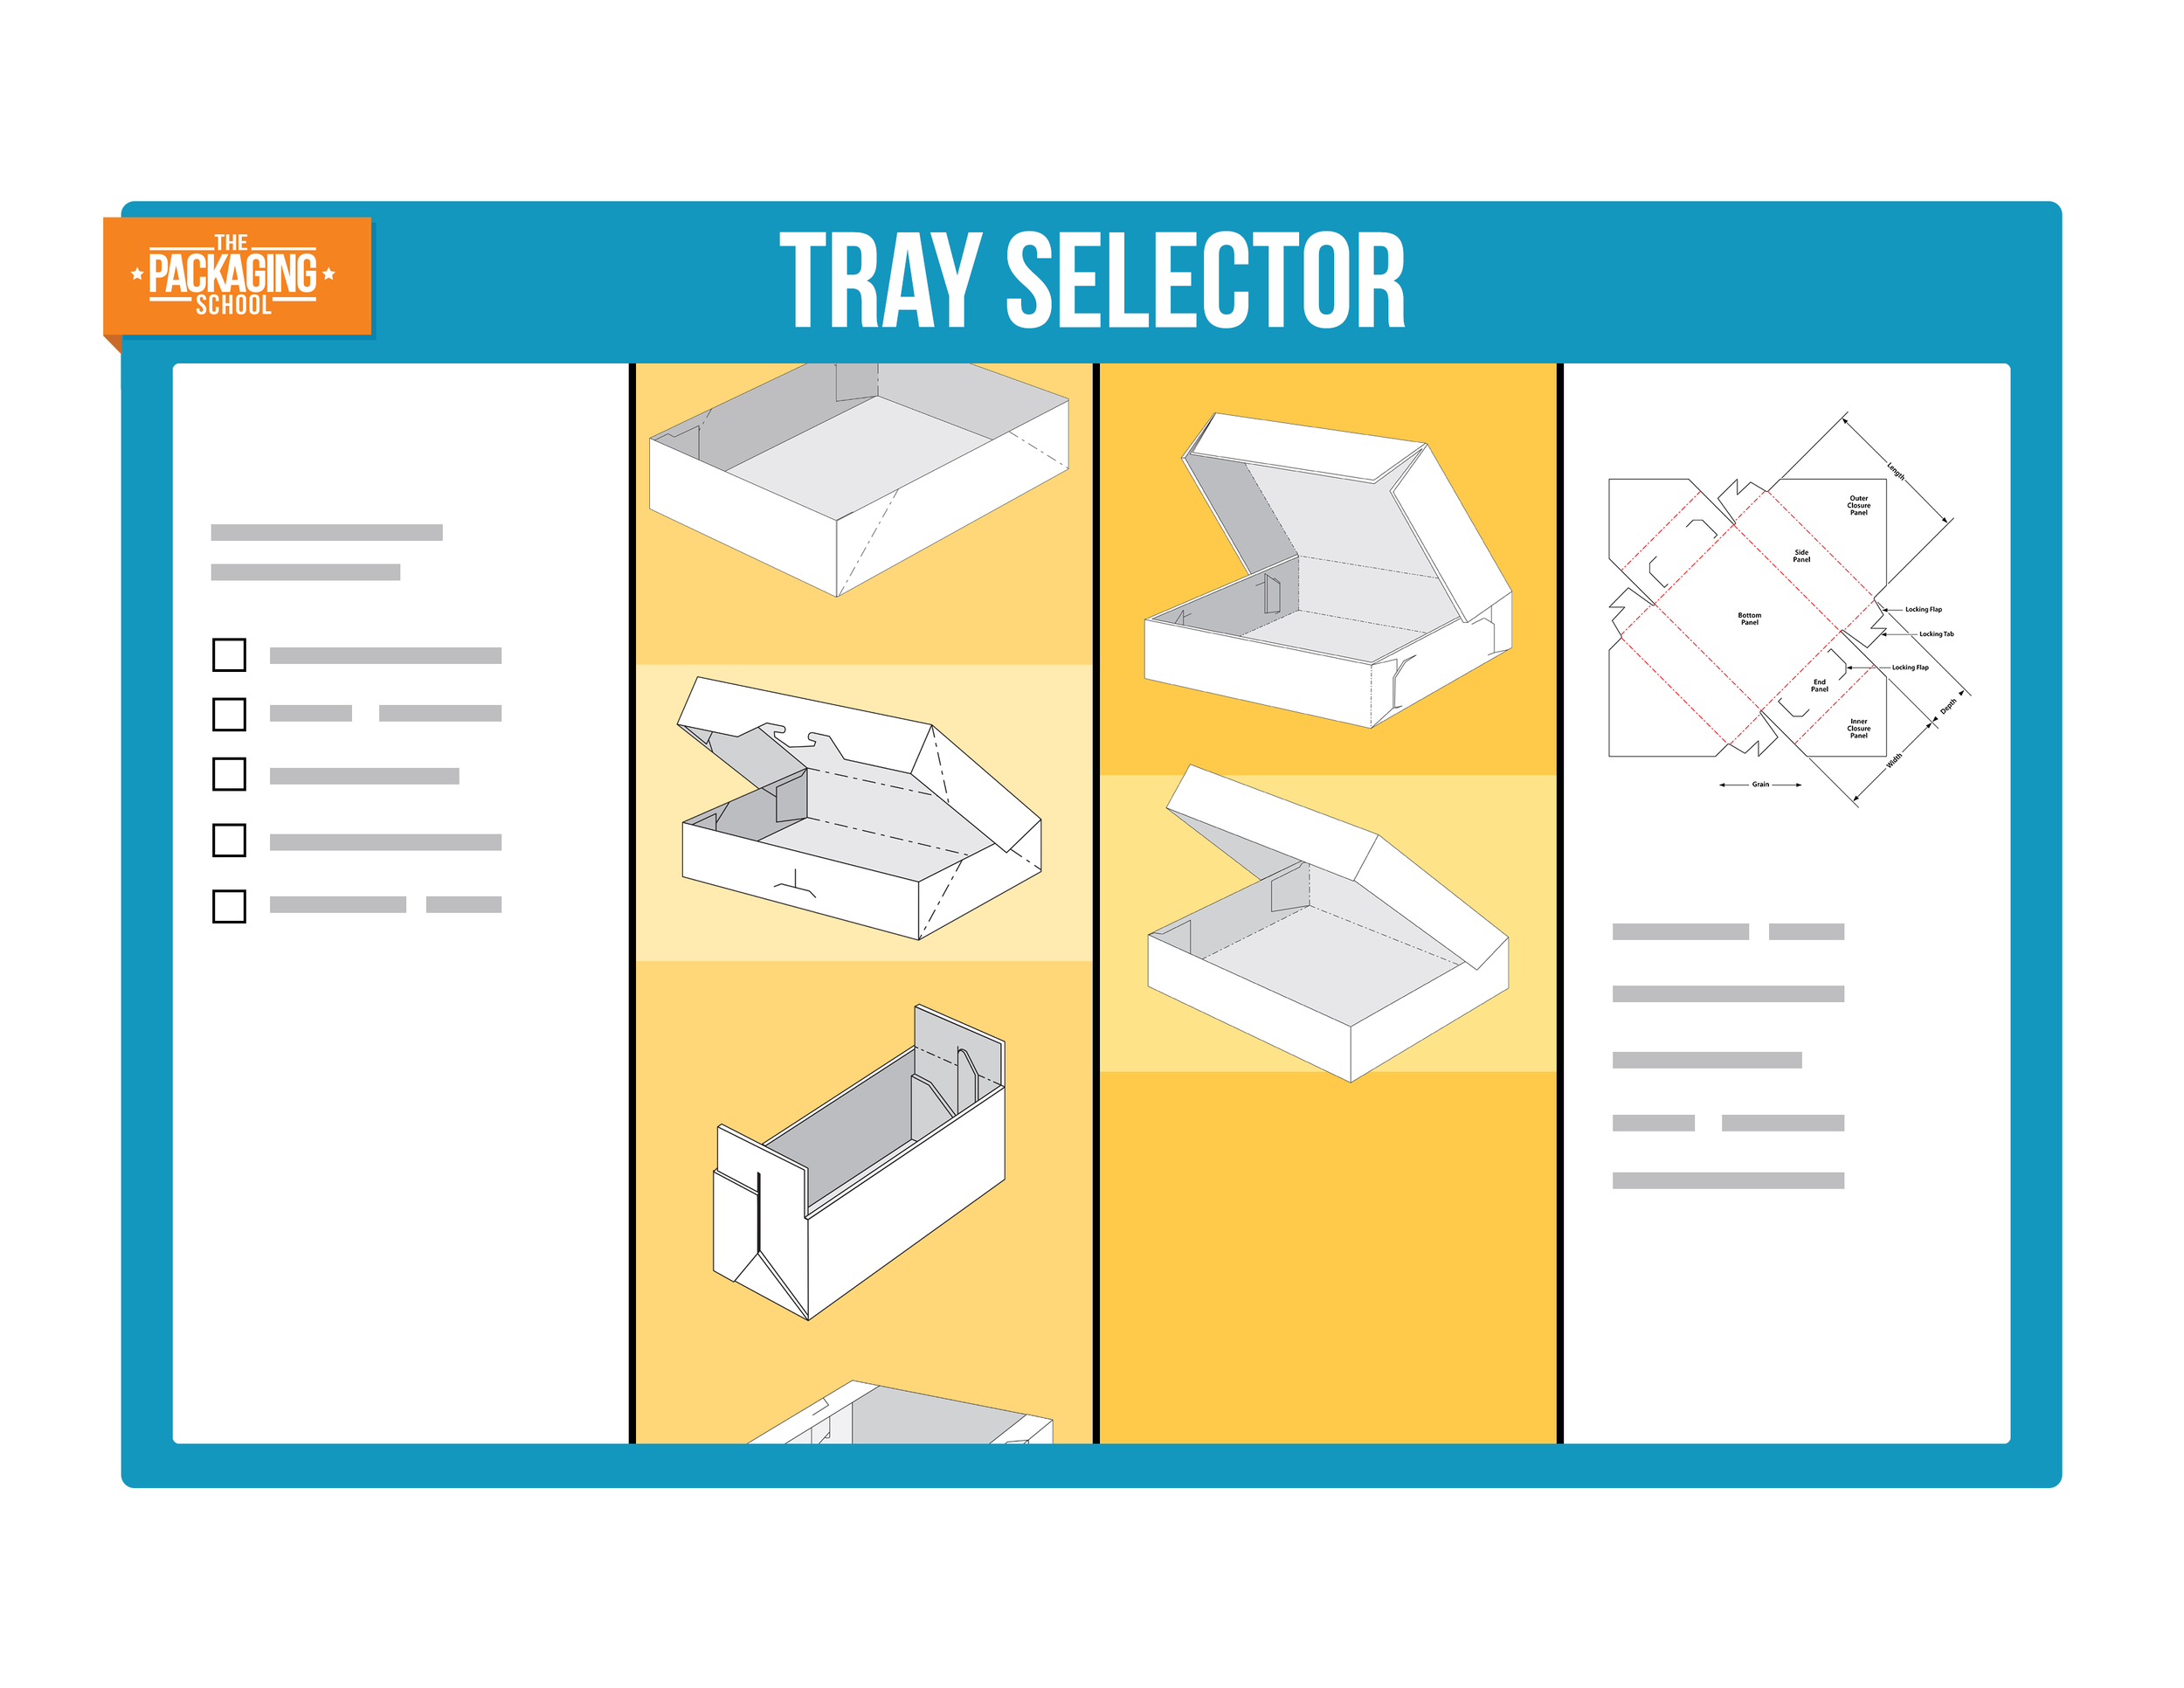 You can use our tube and tray selector apps to identify the best design for your application. We walk you through the process of selecting the attributes that make the most sense for your specific product and package needs.